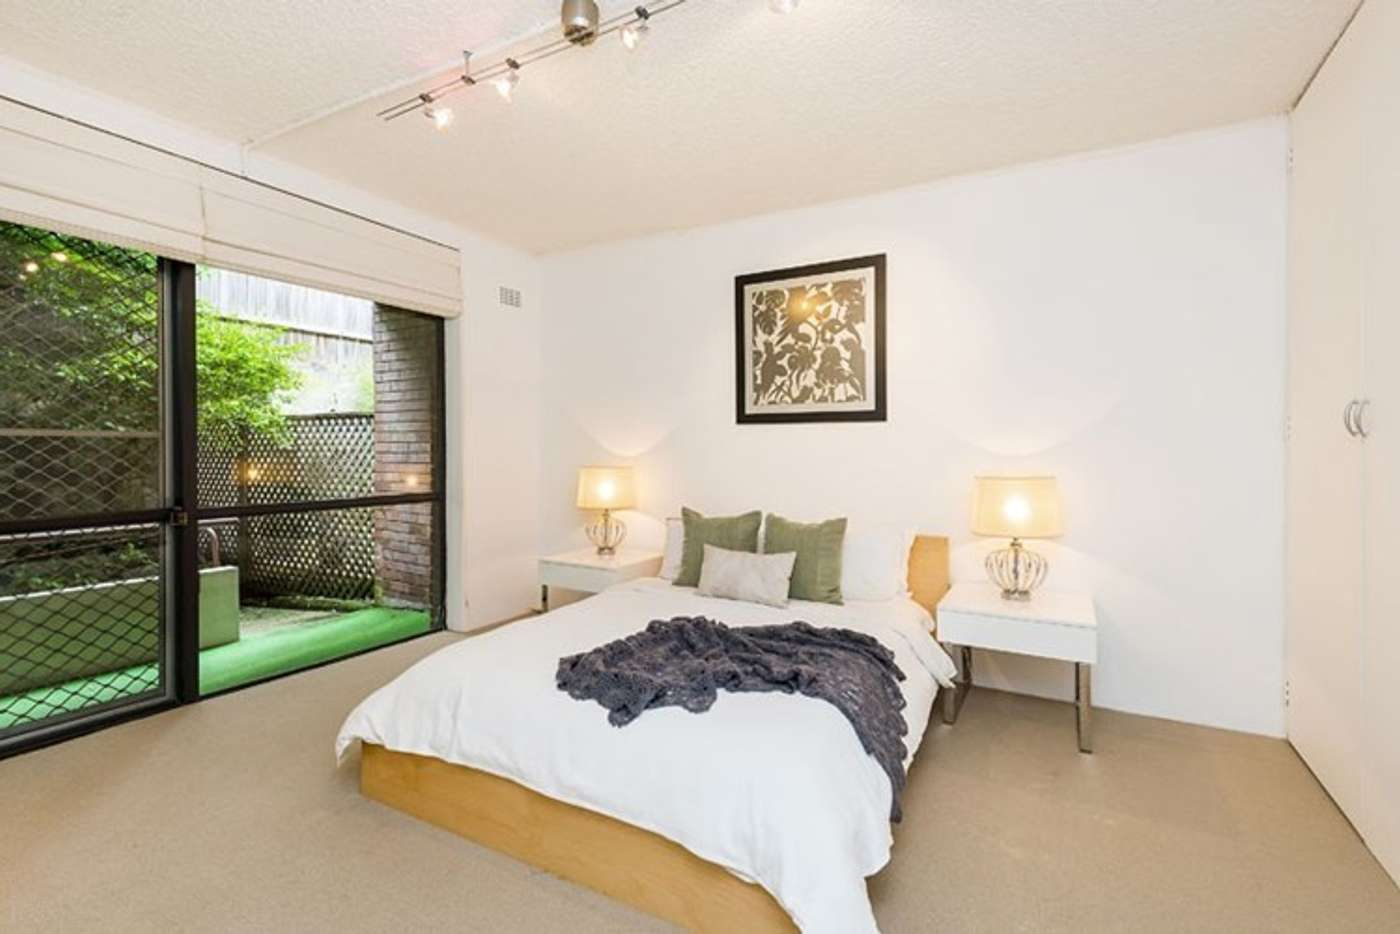 Sixth view of Homely apartment listing, 4/111-113 Young Street, Cremorne NSW 2090